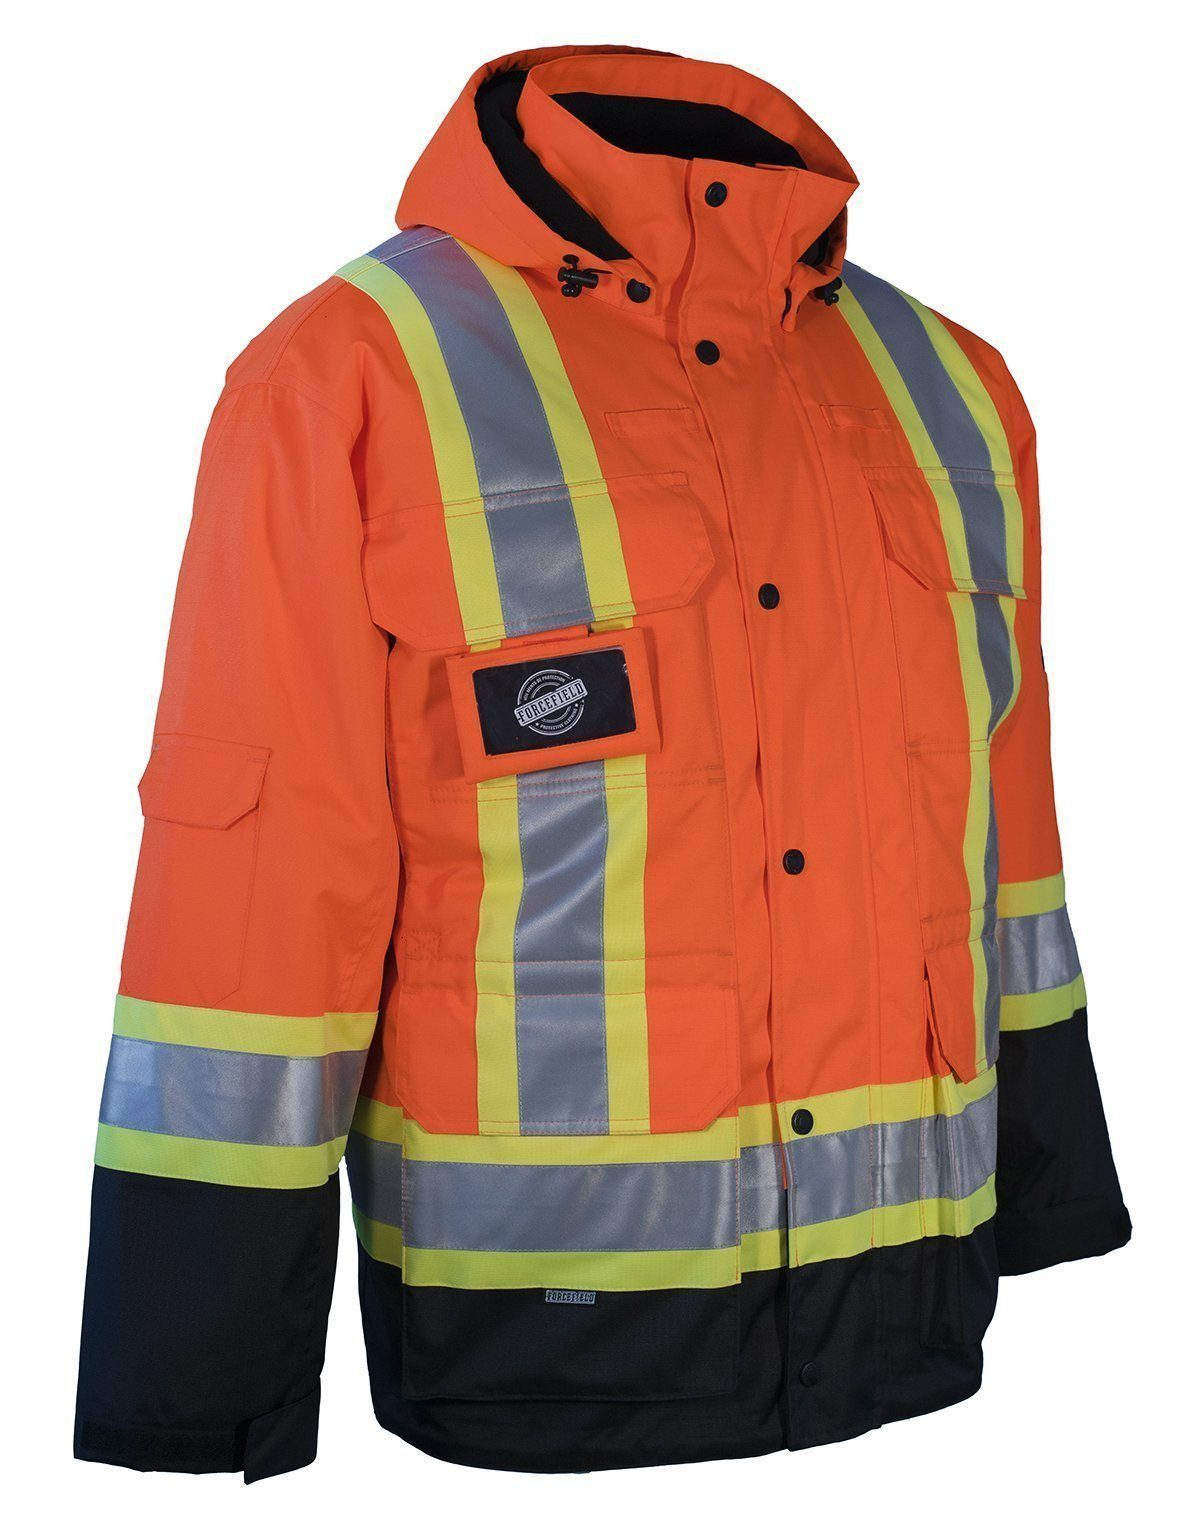 569fcb521 3-in-1 Hi Vis Winter Safety Parka with Removable Black Nylon Puff ...